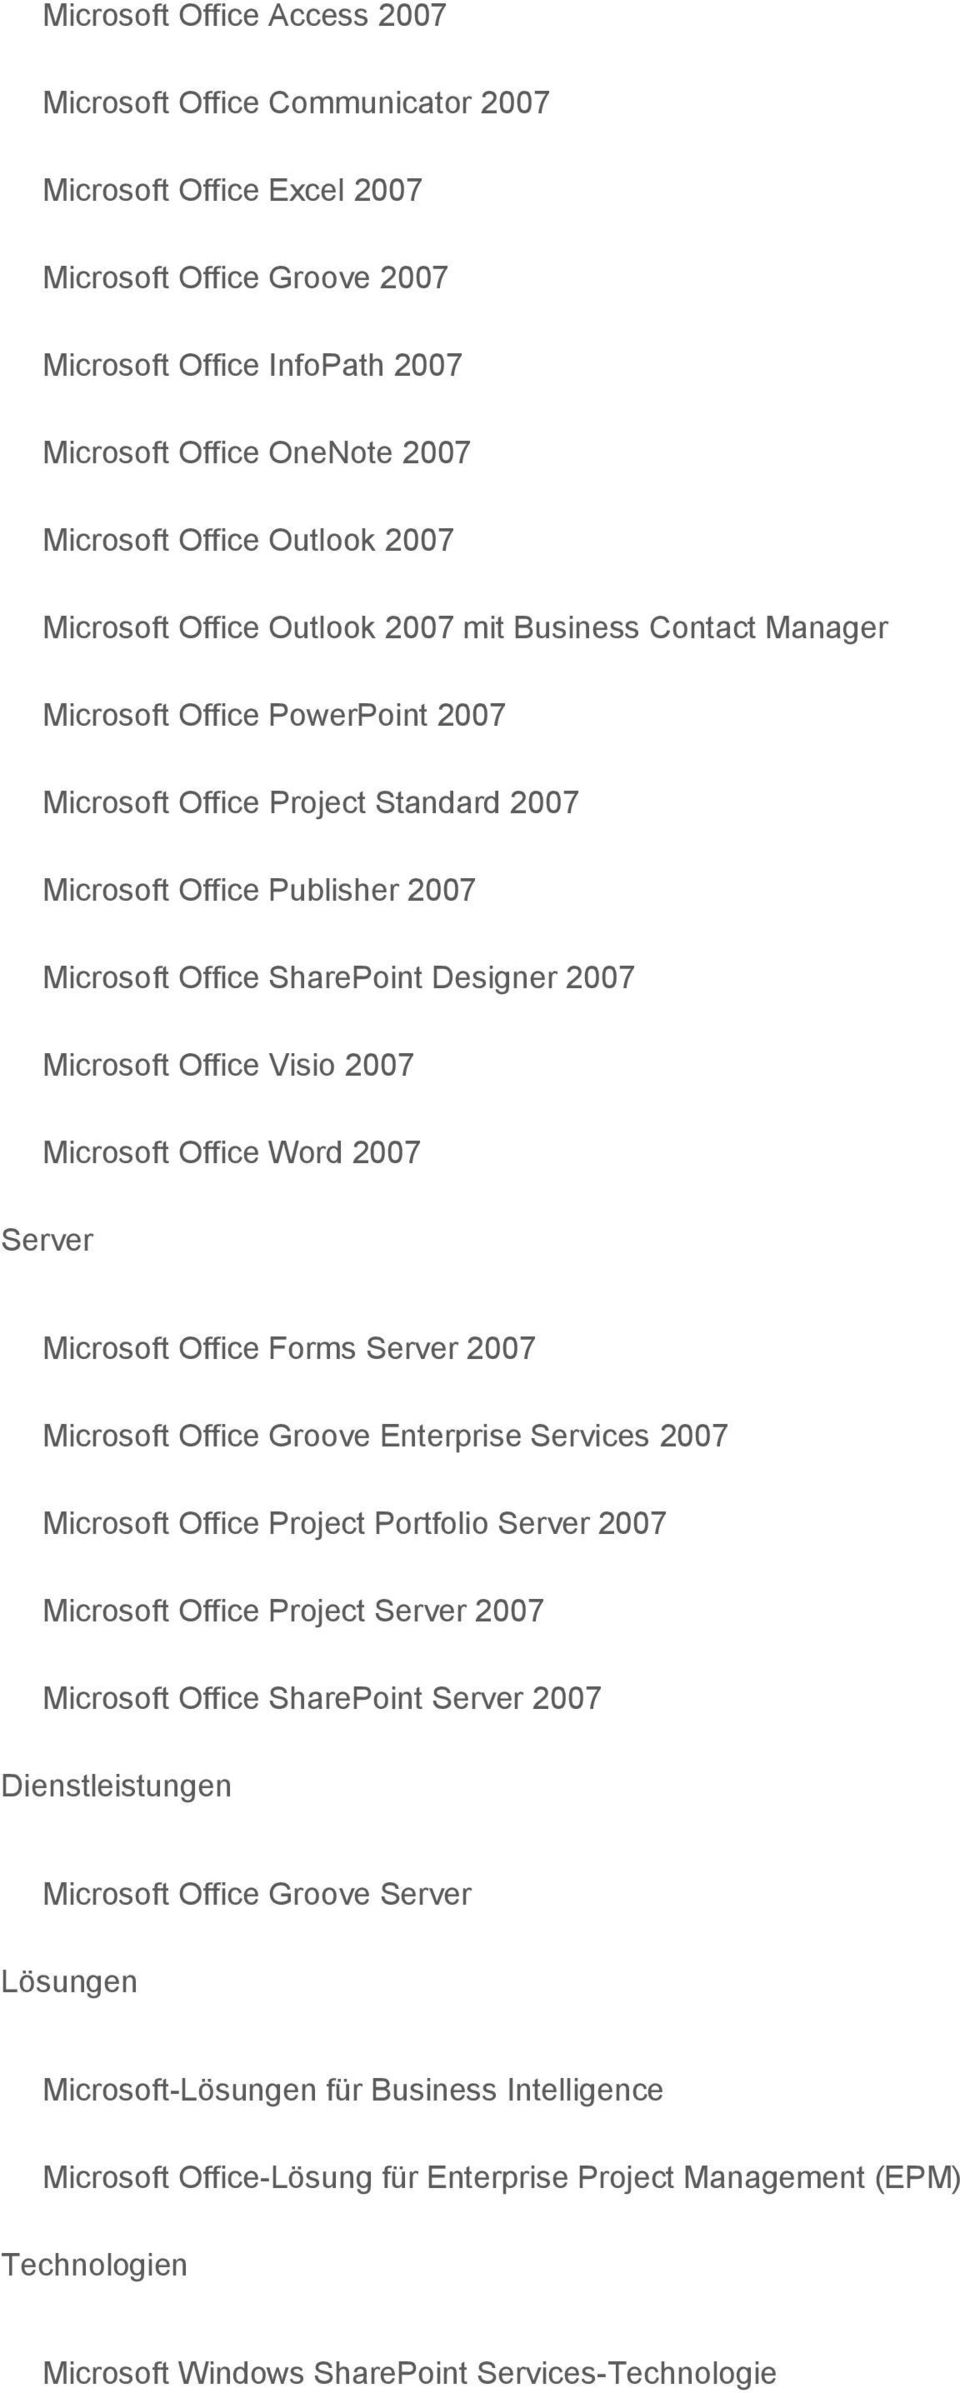 SharePoint Designer 2007 Microsoft Office Visio 2007 Microsoft Office Word 2007 Server Microsoft Office Forms Server 2007 Microsoft Office Groove Enterprise Services 2007 Microsoft Office Project